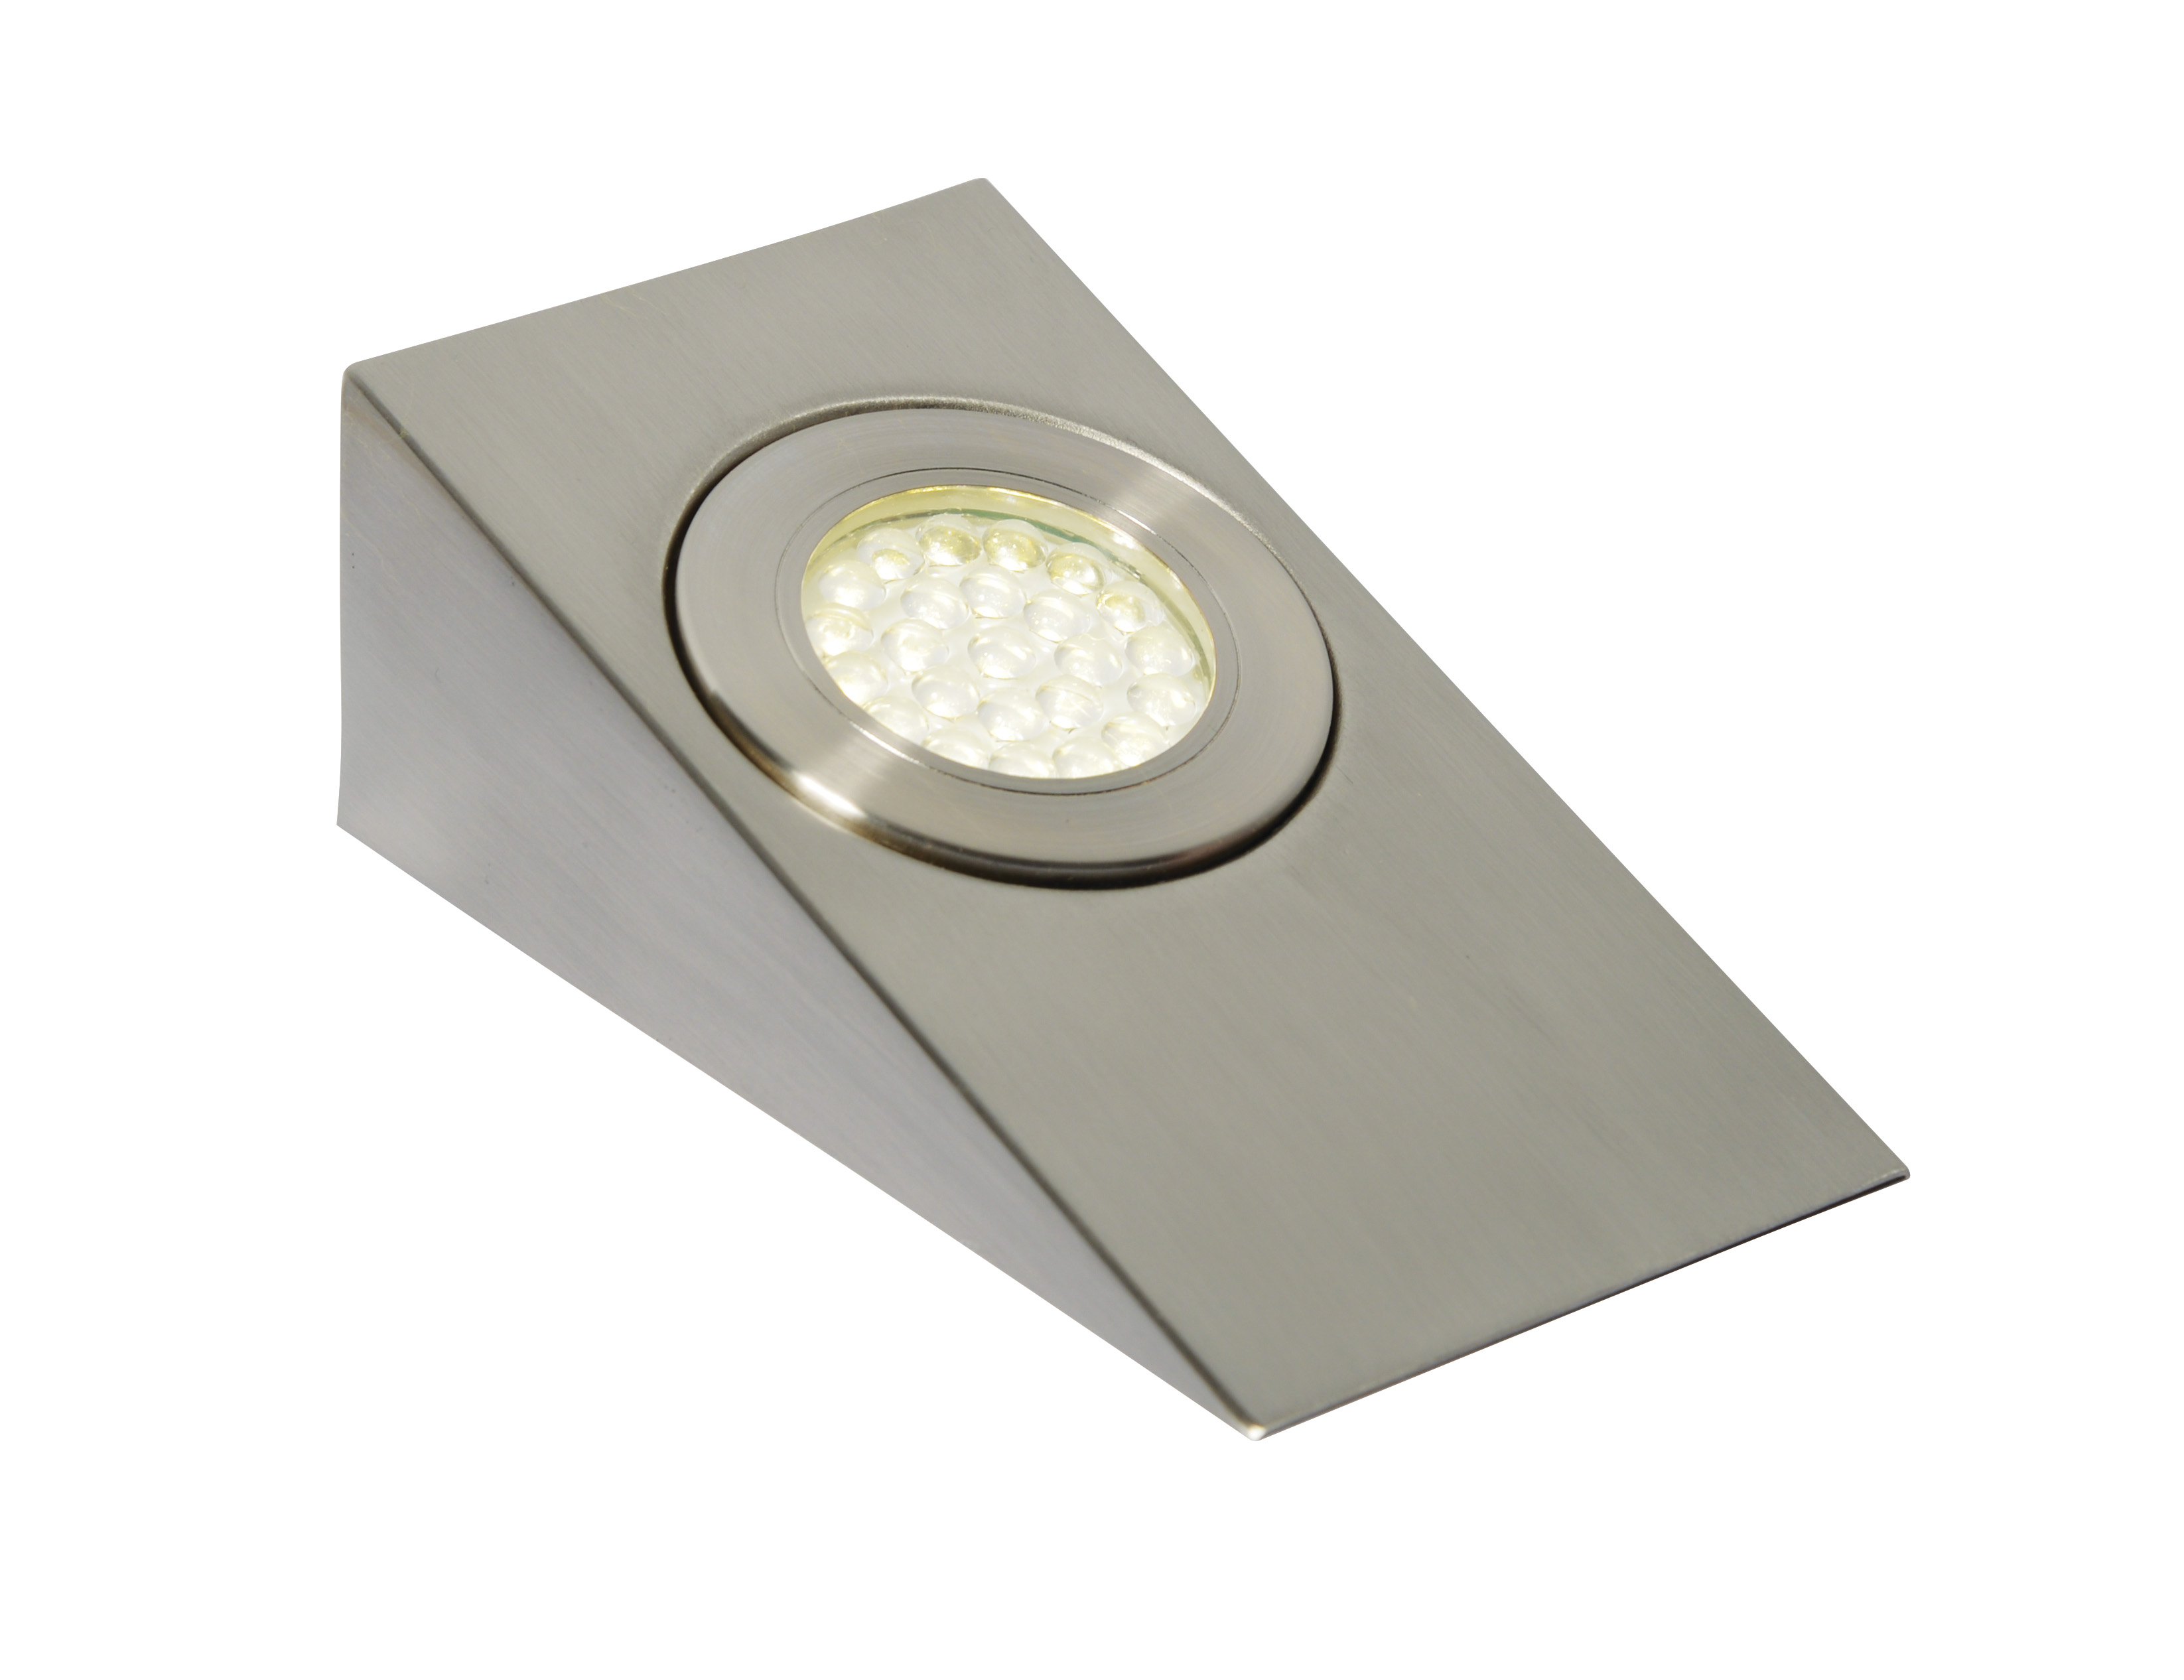 CUL-21627 Lago LED Under Cabinet Light - Cool White